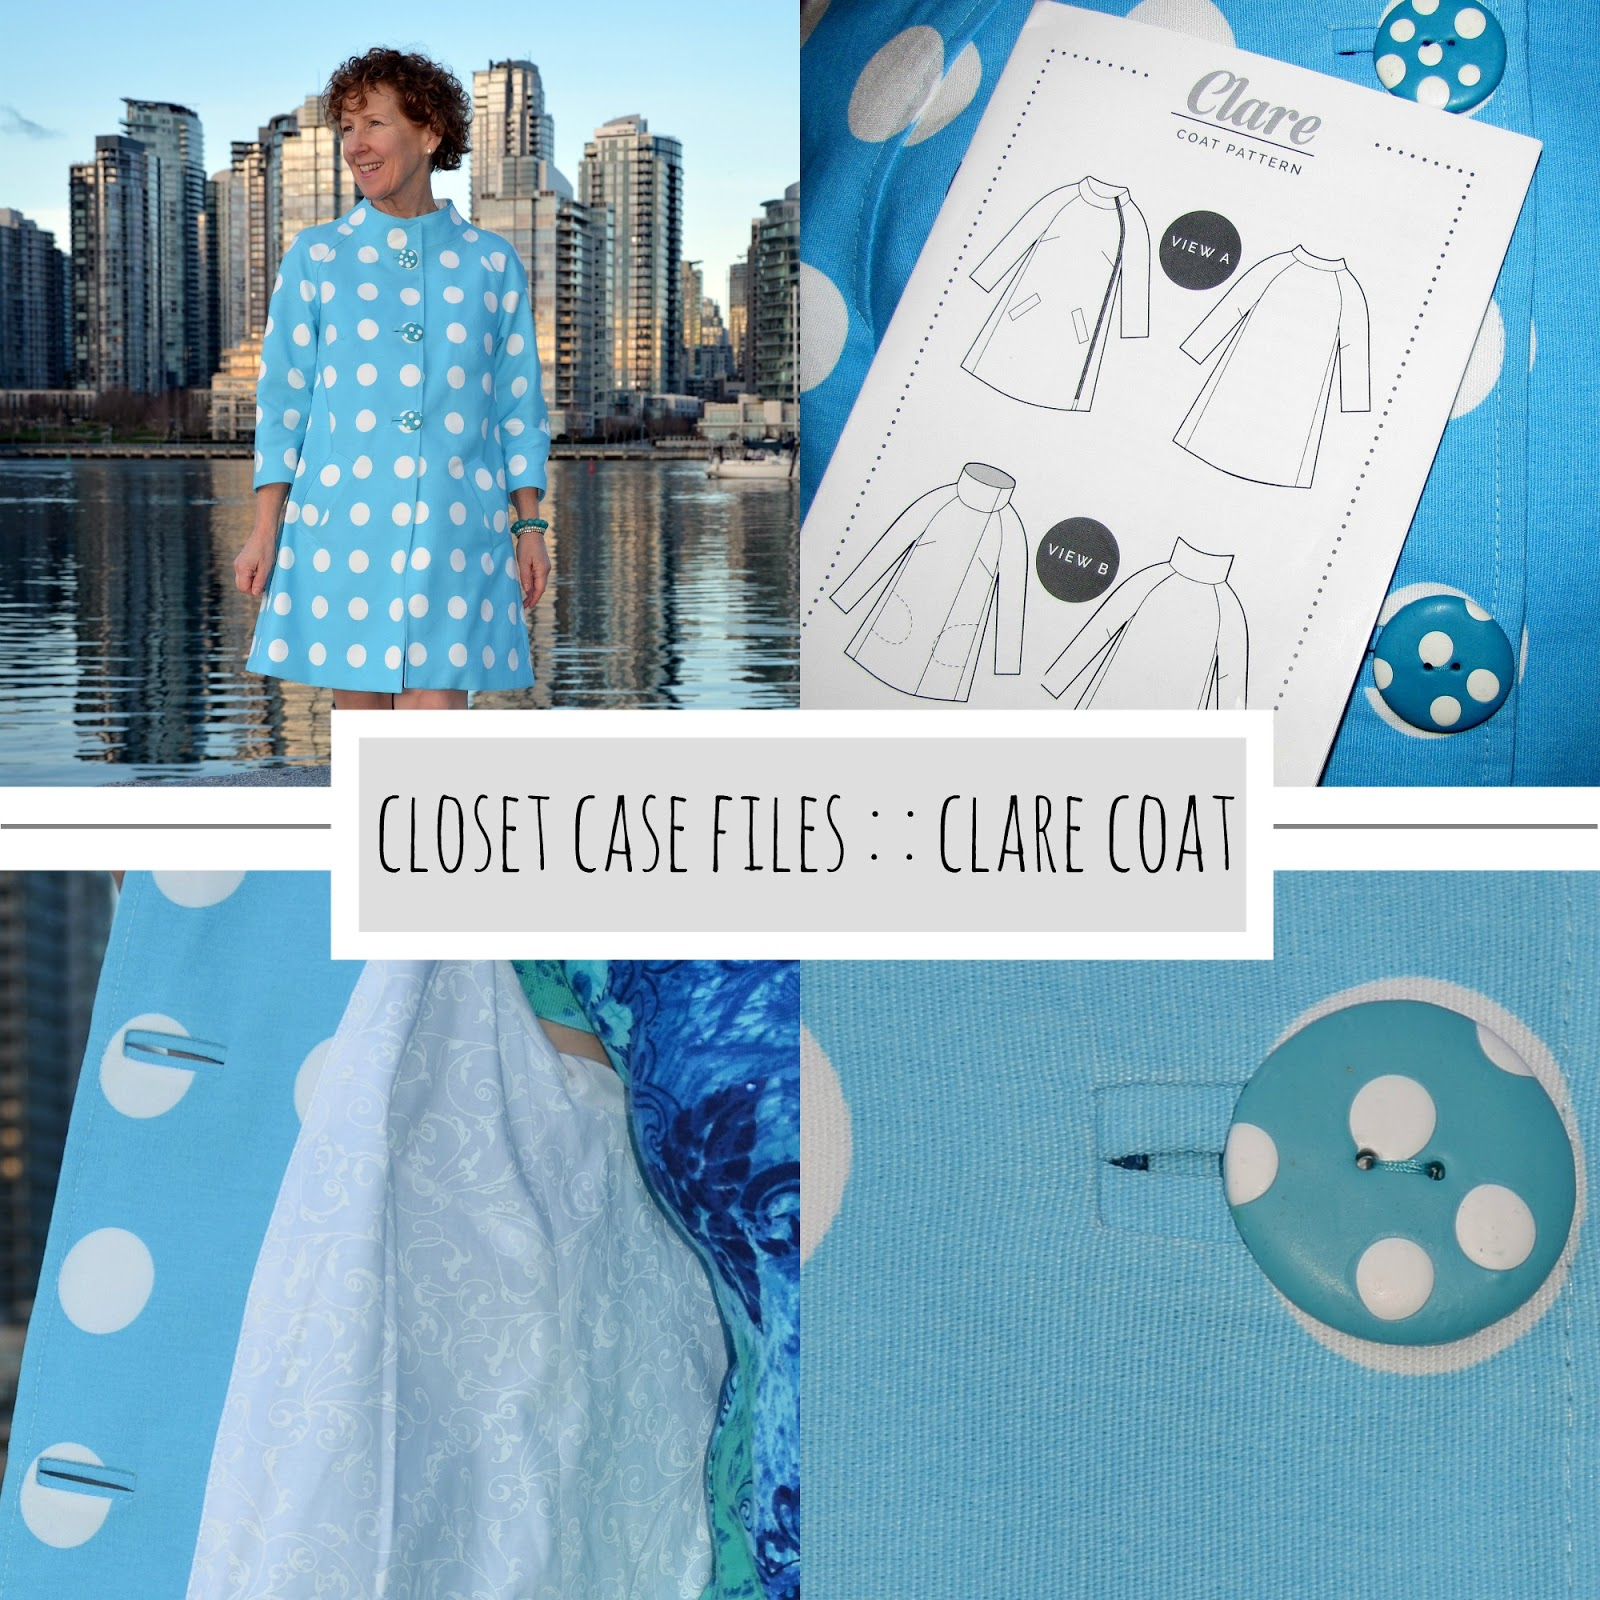 Clare Coat, Closet Case Files, DYT Type One